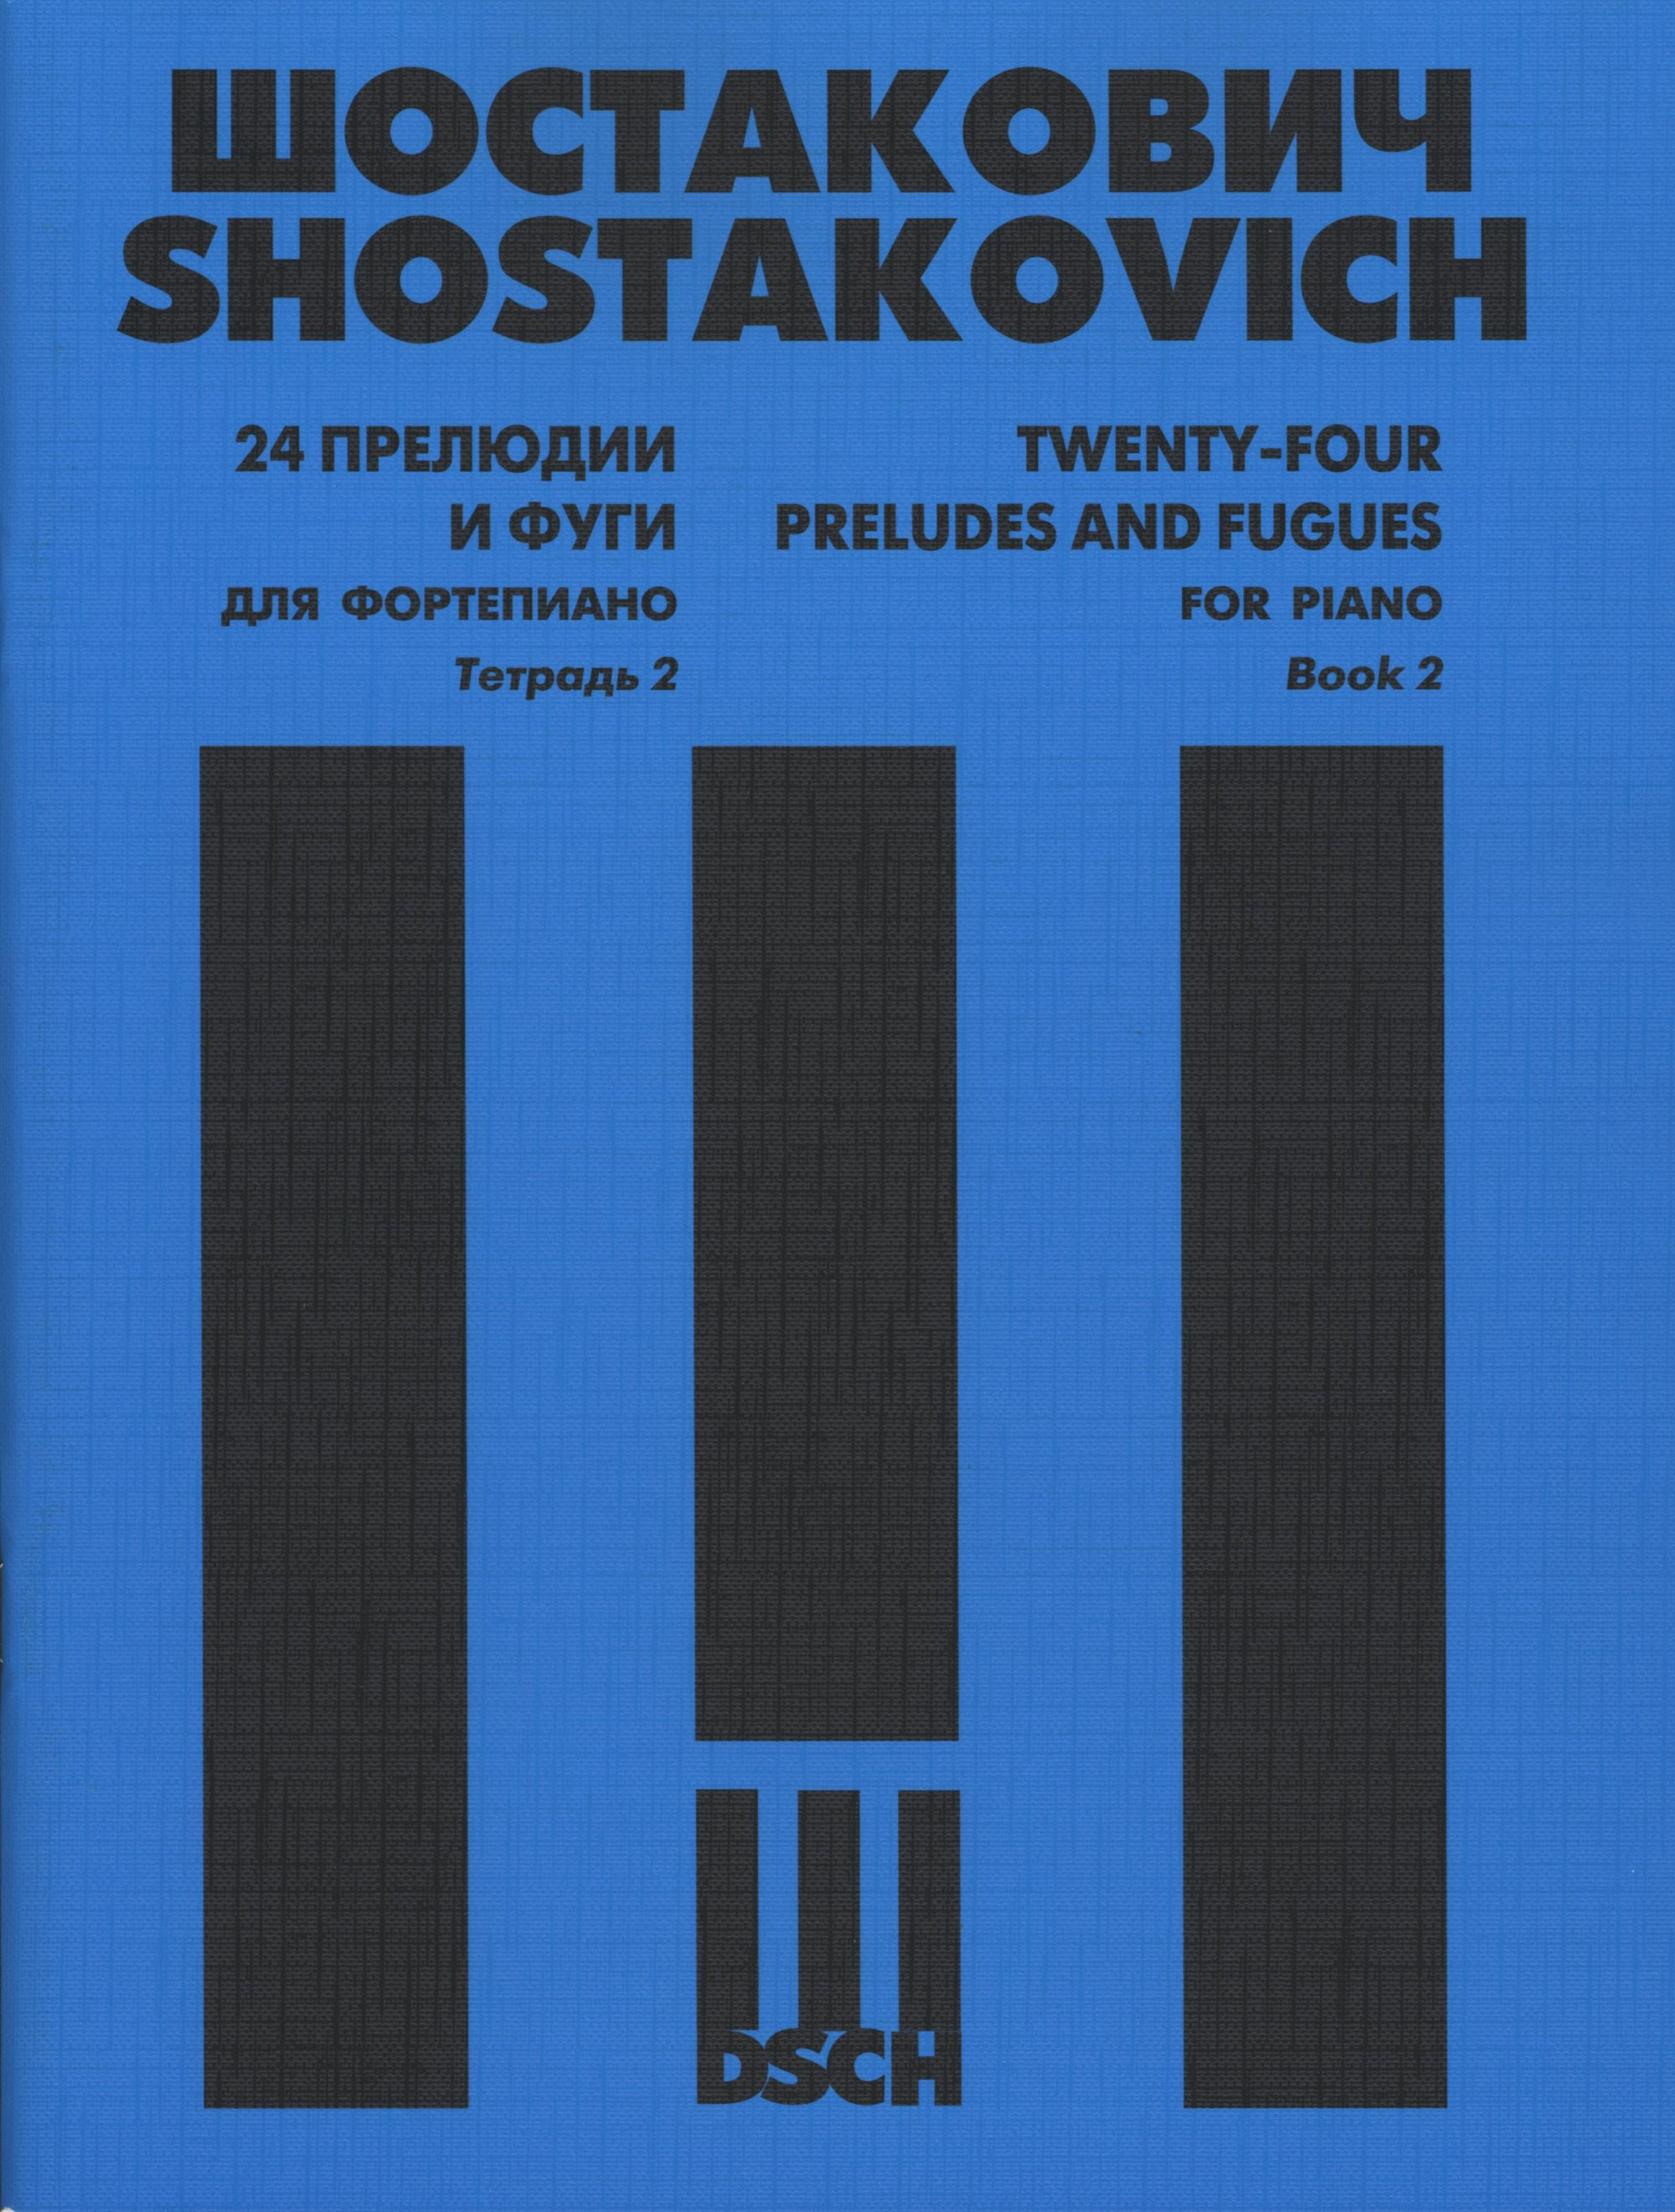 Shostakovich: 24 Preludes and Fugues, Op. 87 - Book 2 (Nos. 7-12)